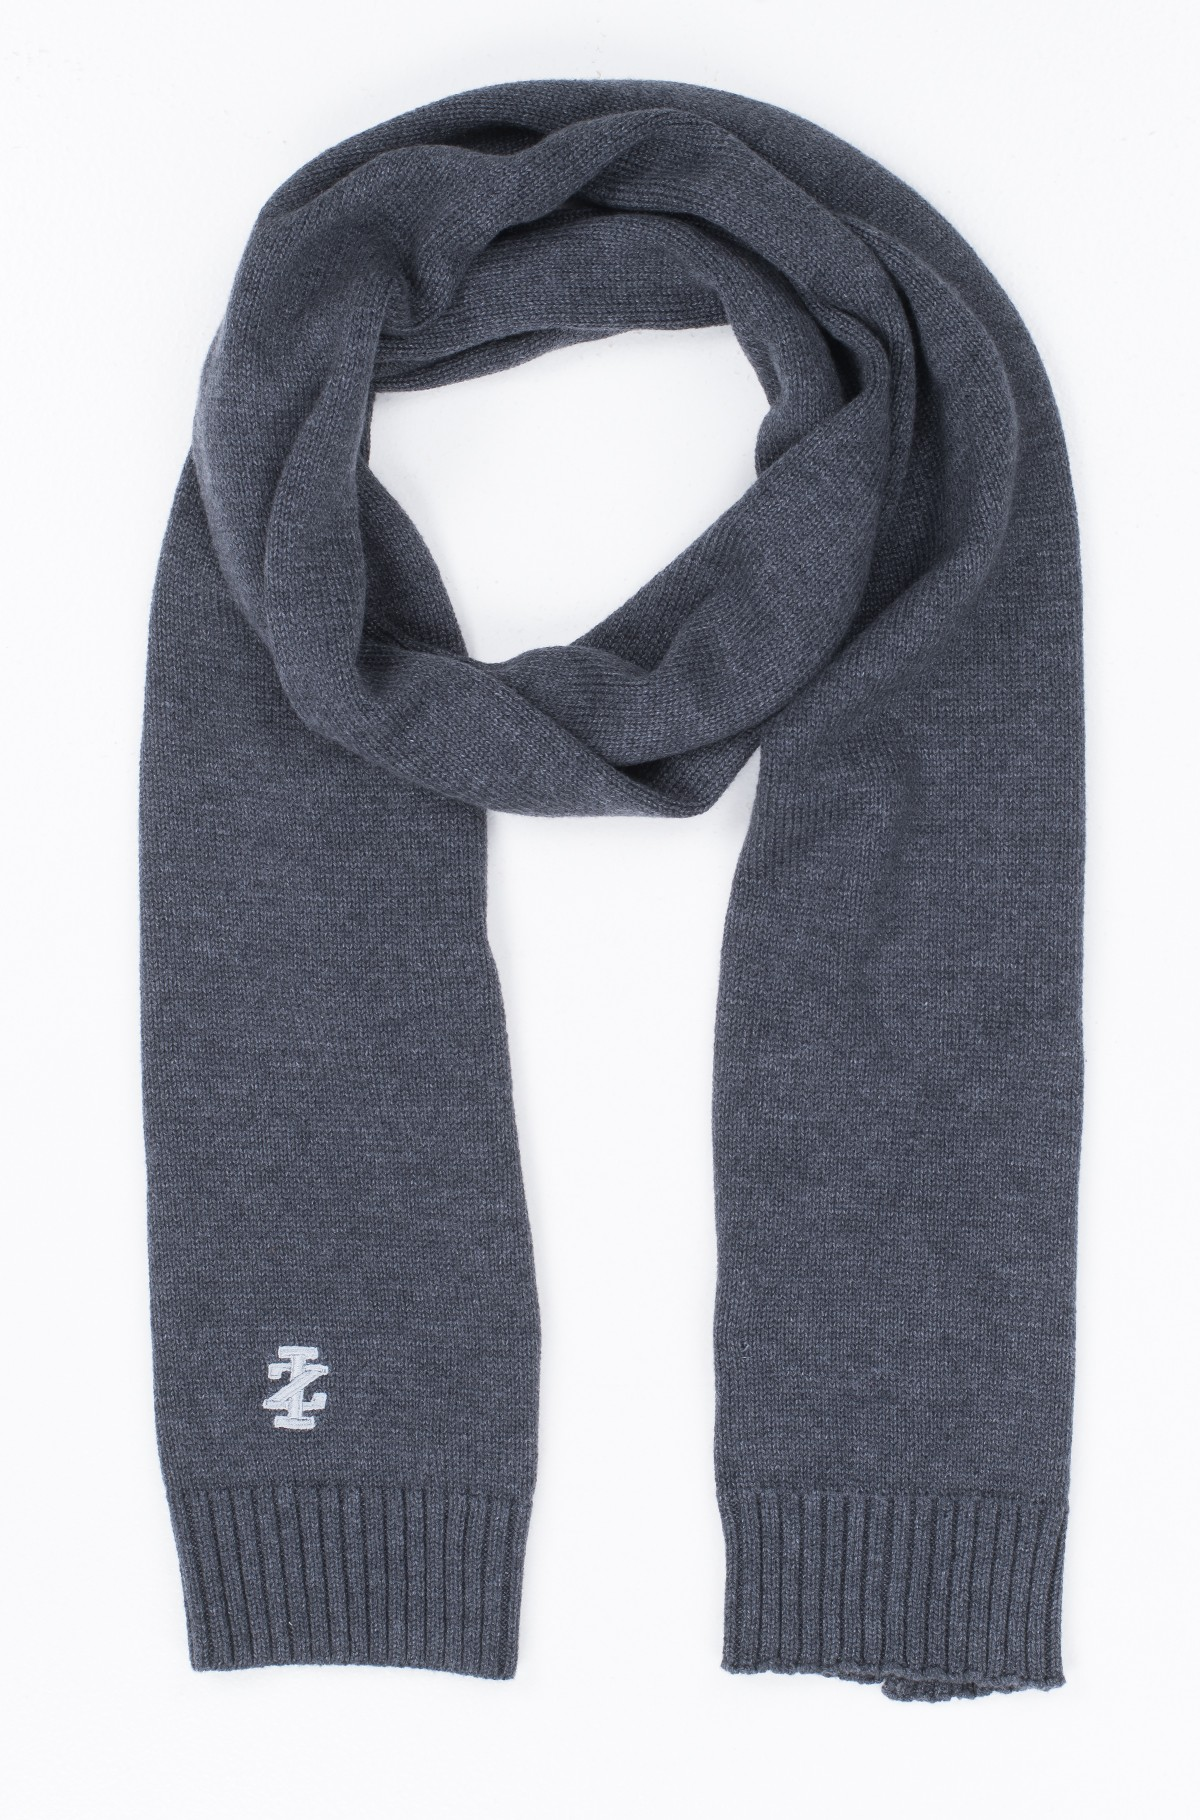 Sall BASIC LOGO SCARF	-full-1